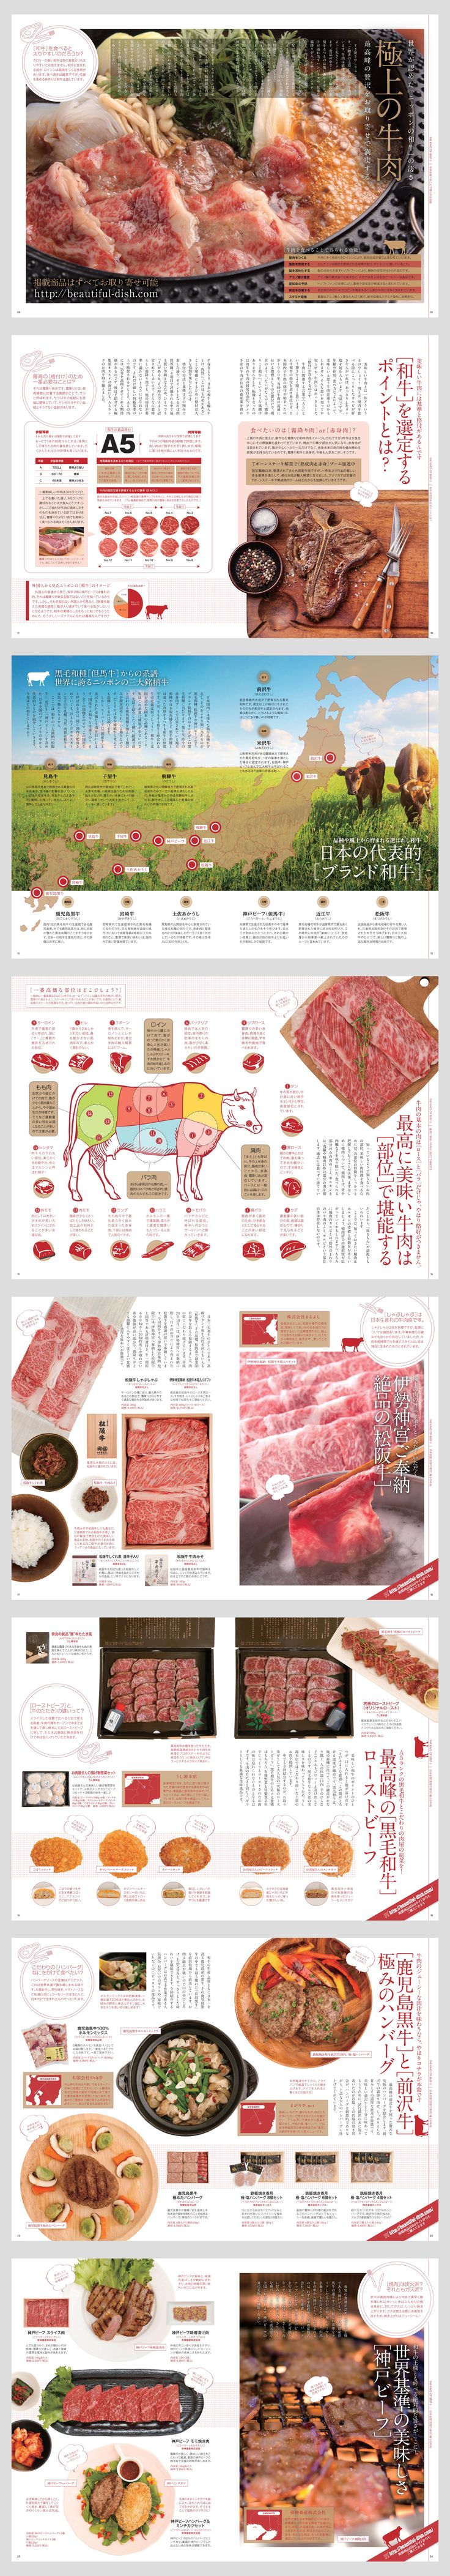 極上の牛肉 #editorial #layout